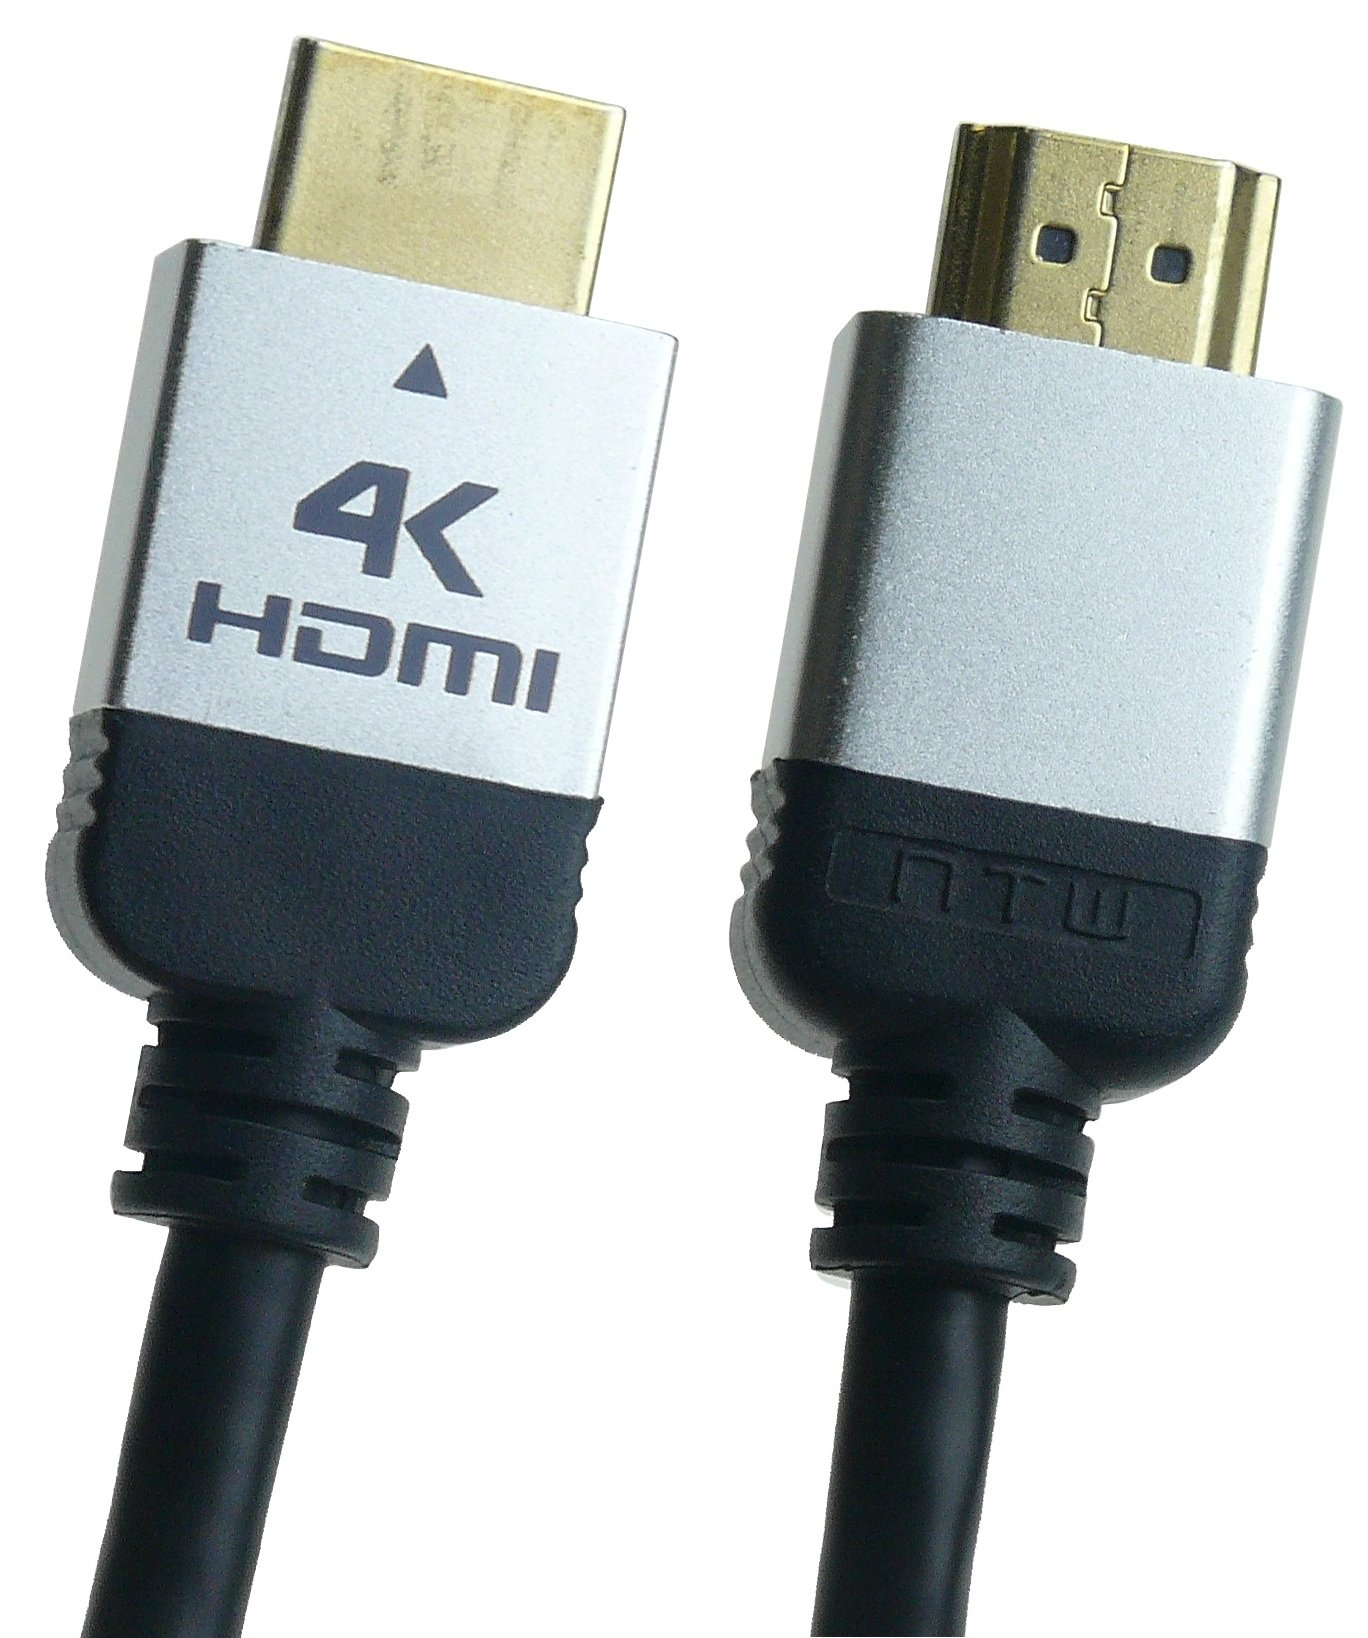 NTW NHDMI2P-012+ 12' Ultra HD PURE PLUS 4K High Speed HDMI Cable with Ethernet by NTW